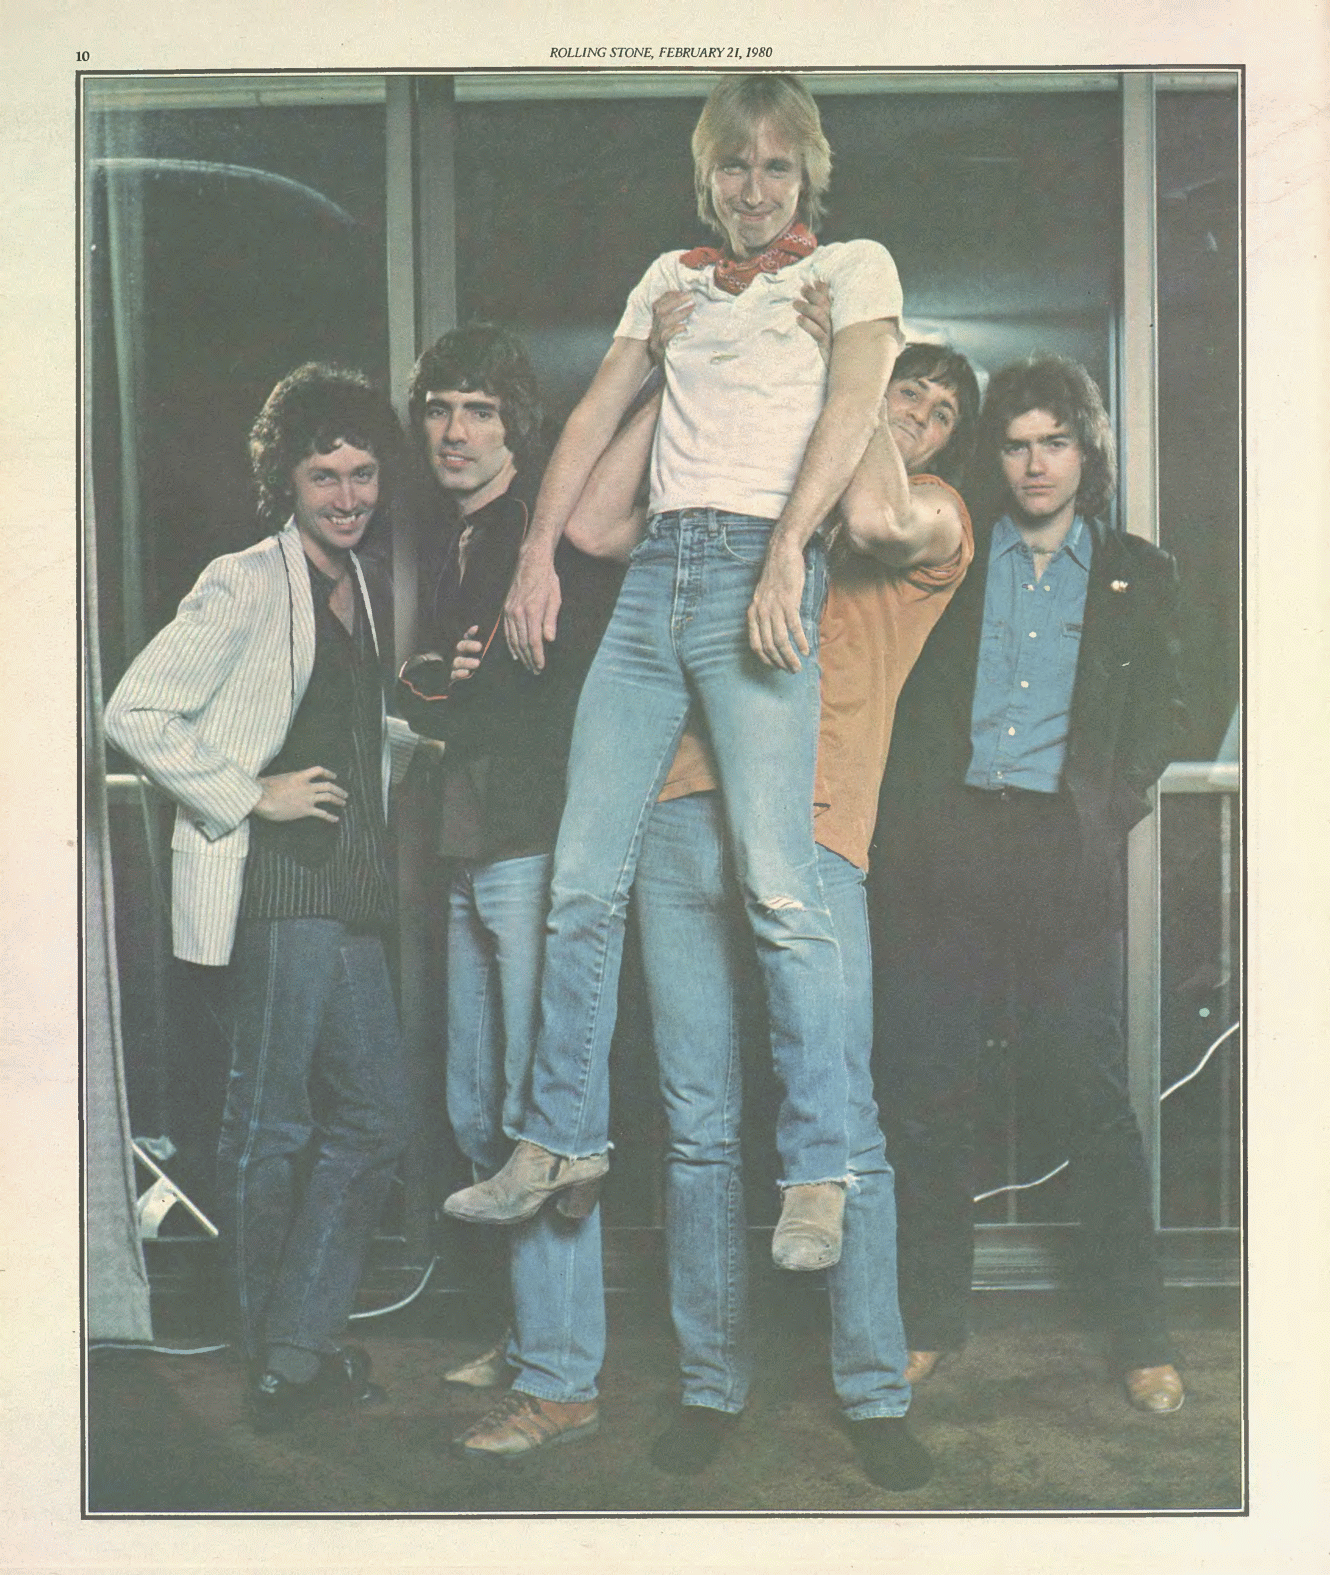 1980-02-21_RollingStone311-3.png